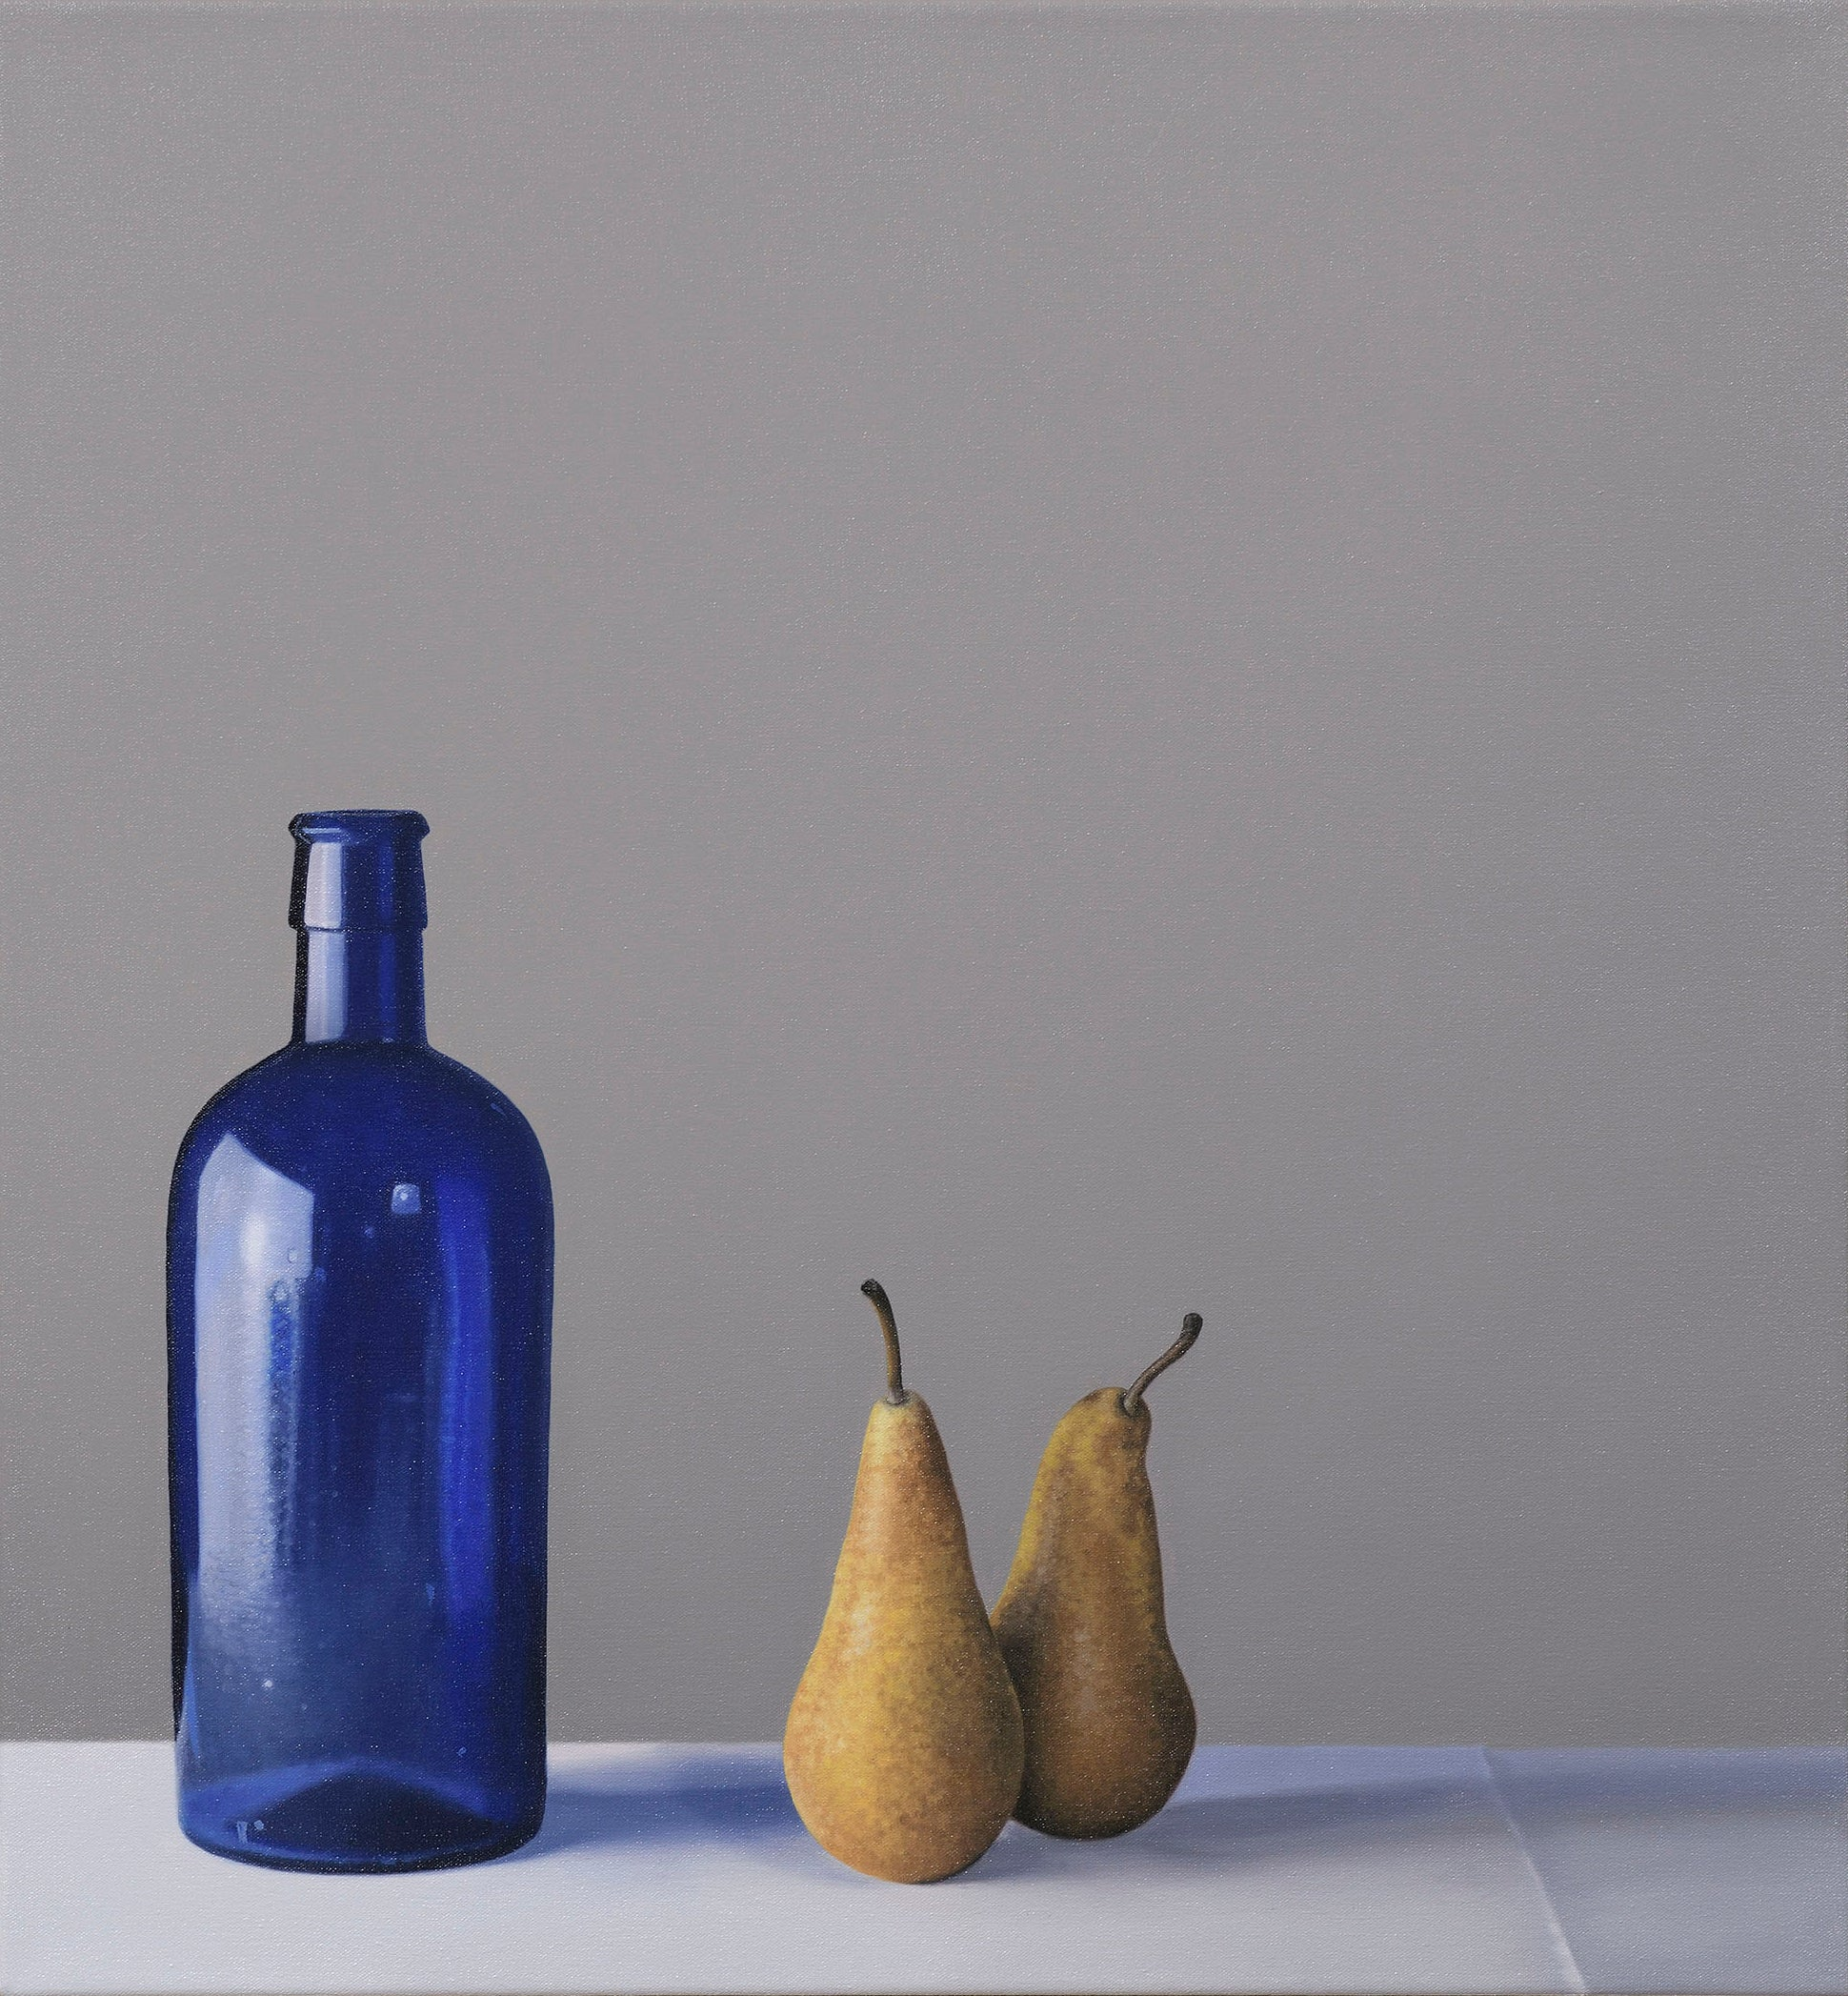 Still Life with Blue Glass Bottle and Pears